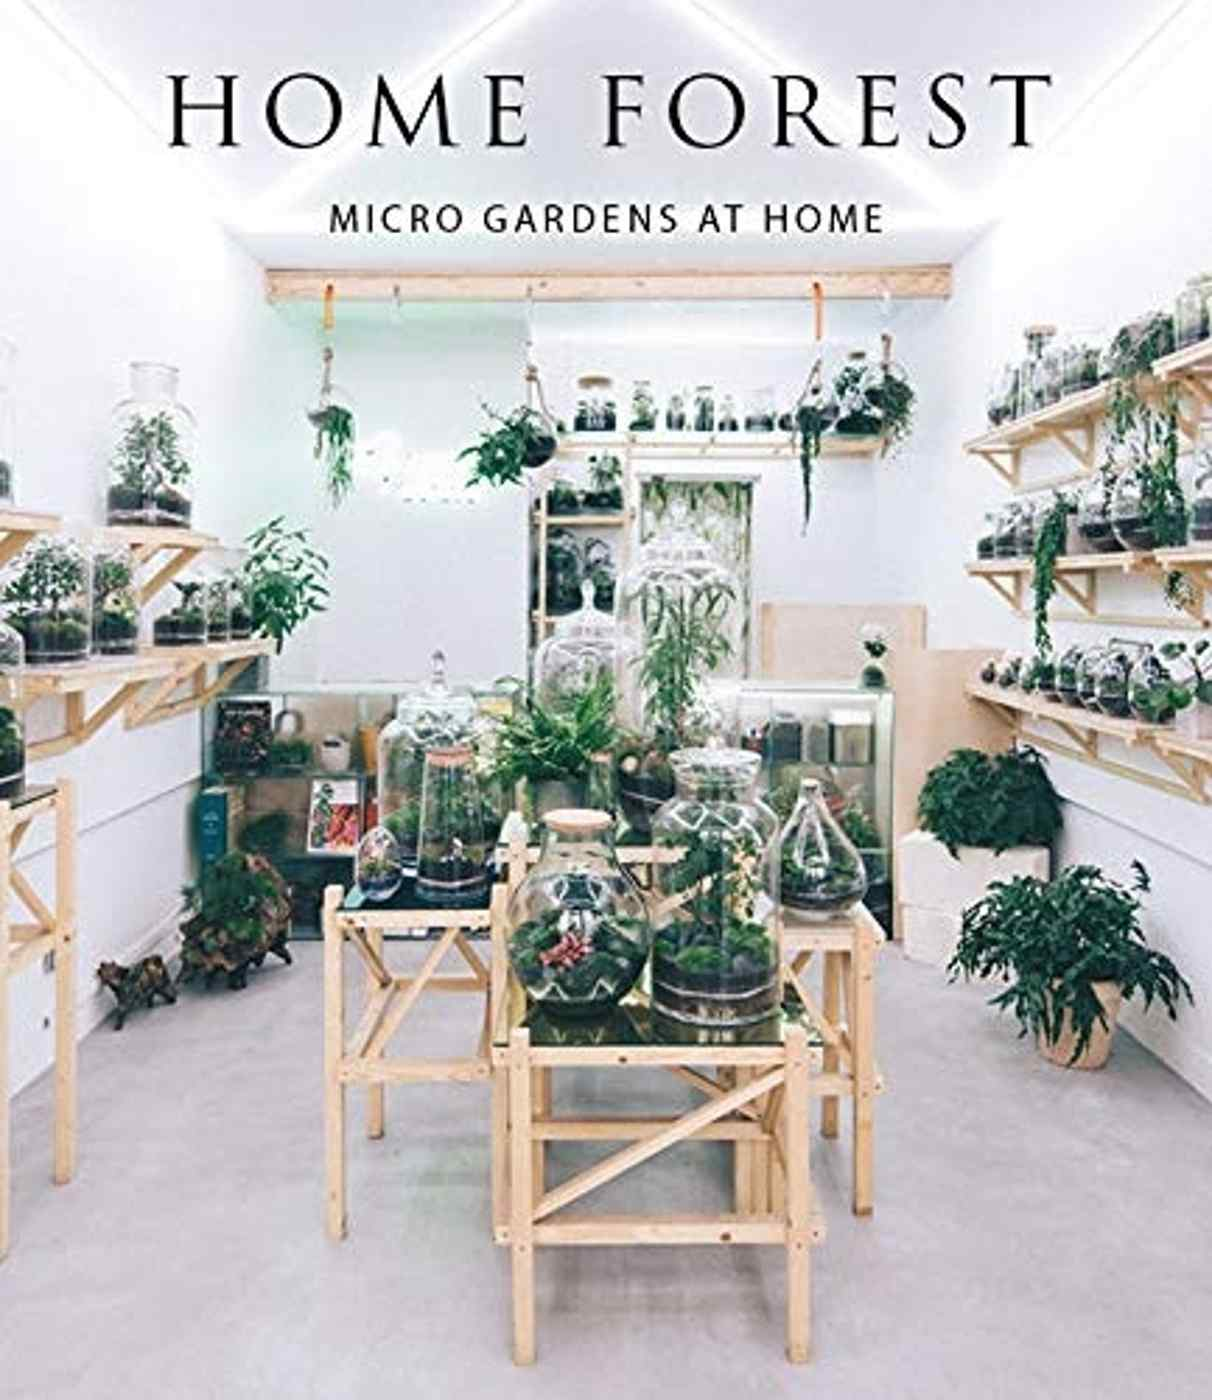 HOME FOREST, INTERIOR MICRO GARDENS